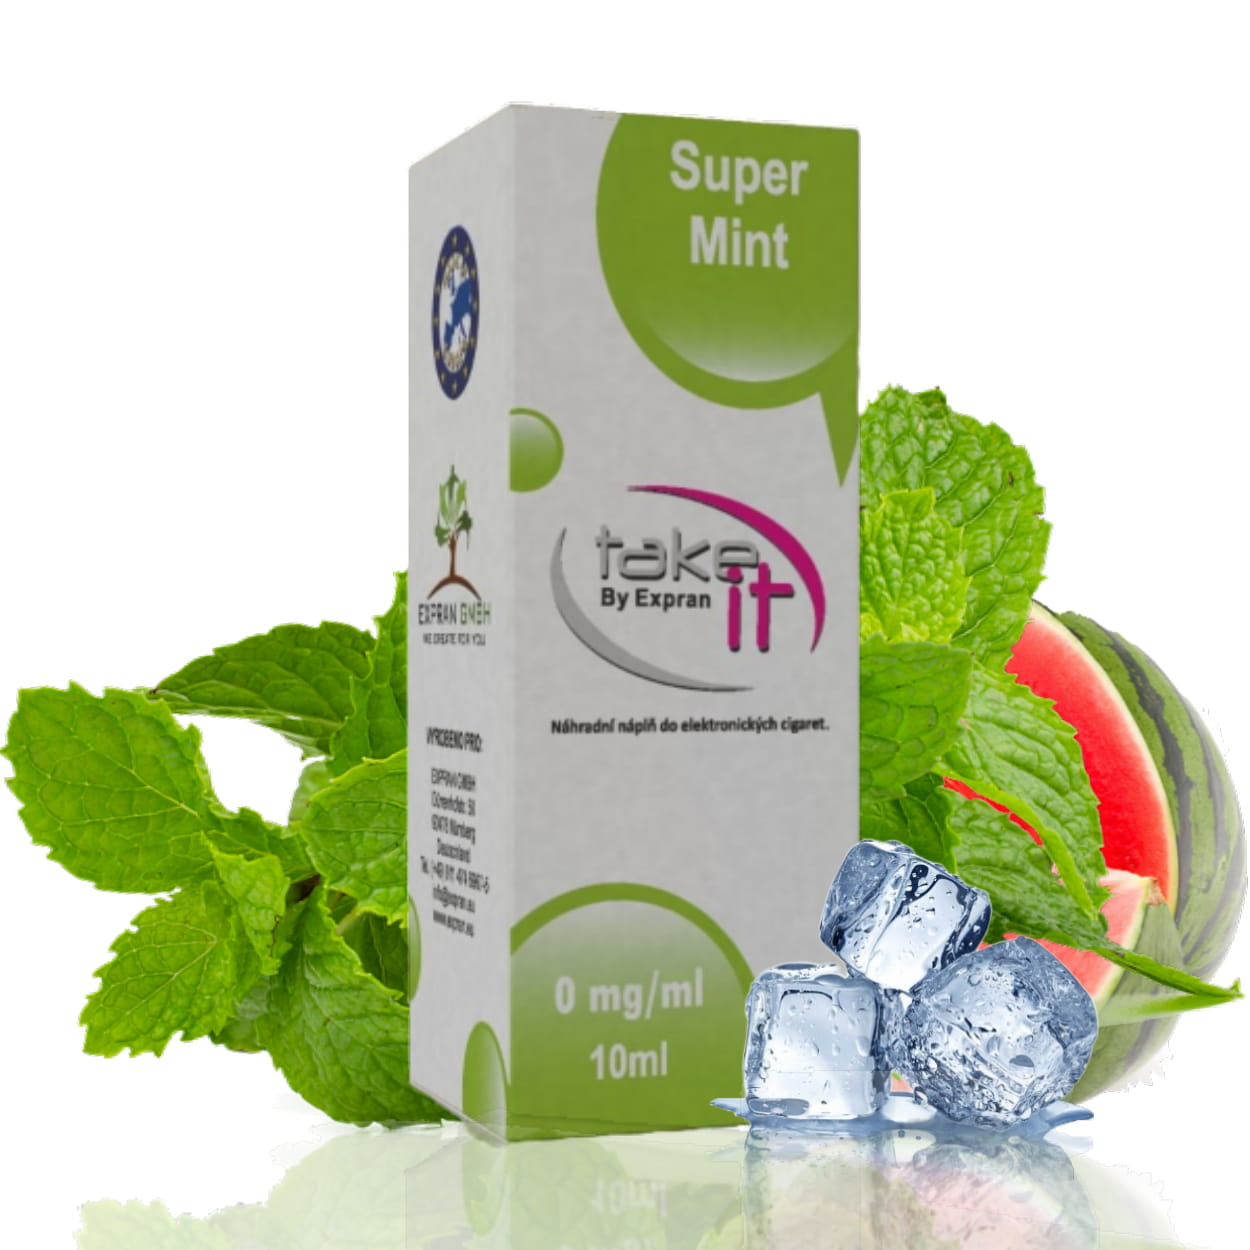 10 ml Take It - Super Mint 12 mg/ml